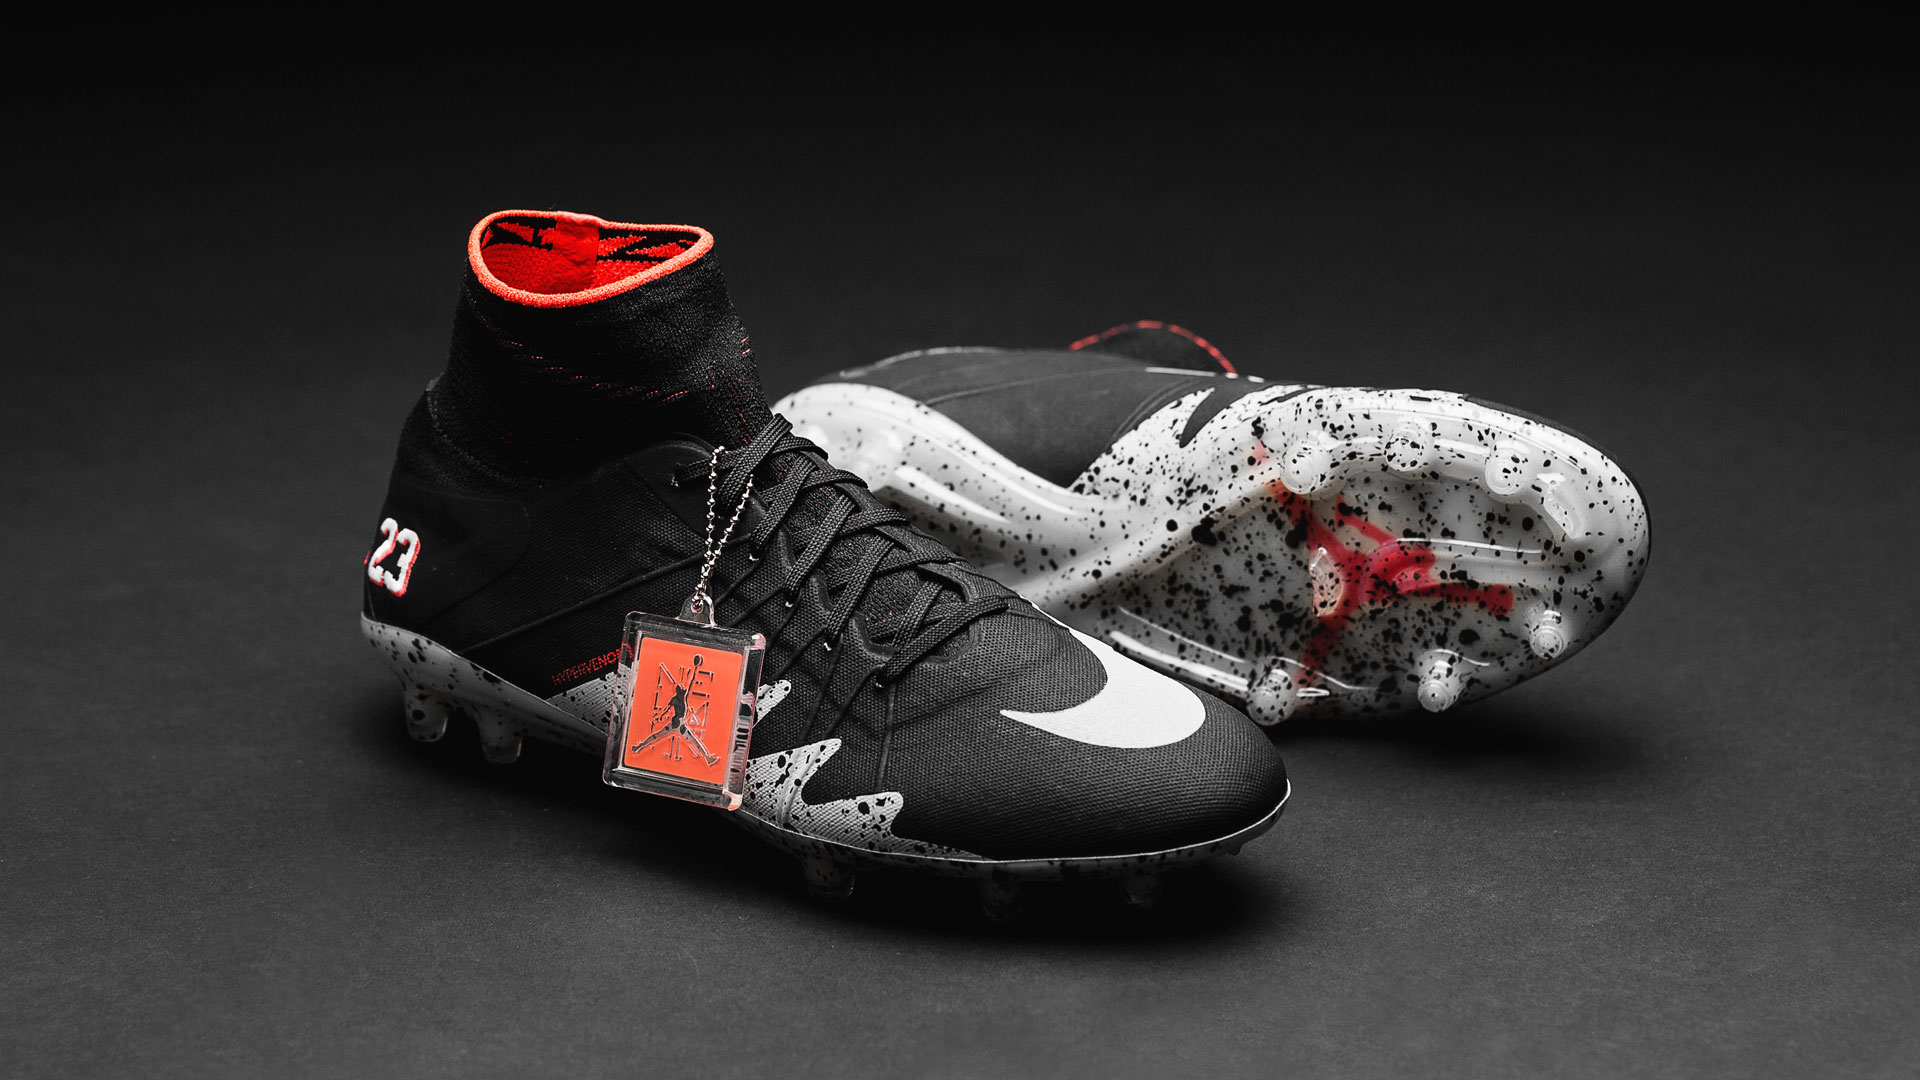 bd1dbb52e Nike designer Nathan van Hook talks about the NJR x JORDAN Hypervenom